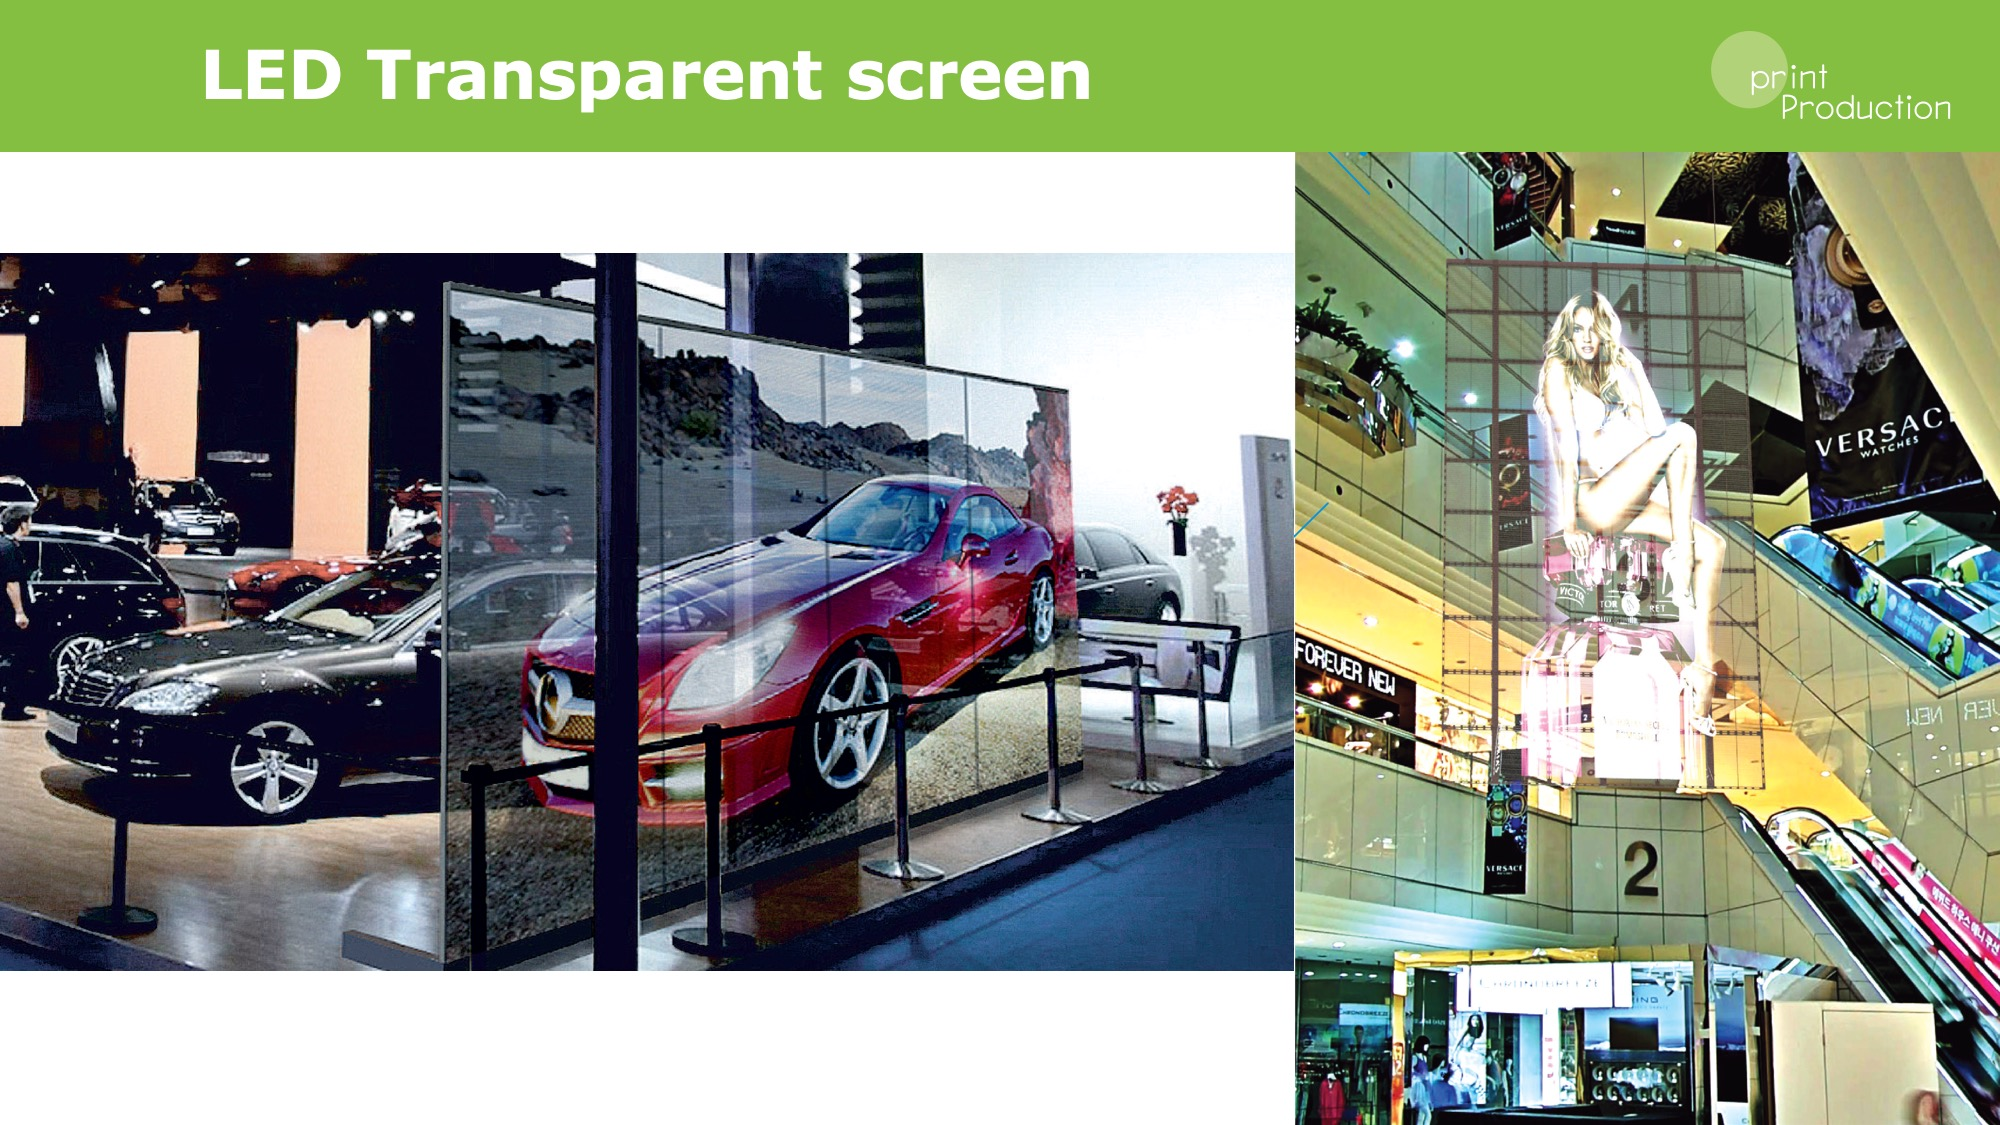 Led transparent screen